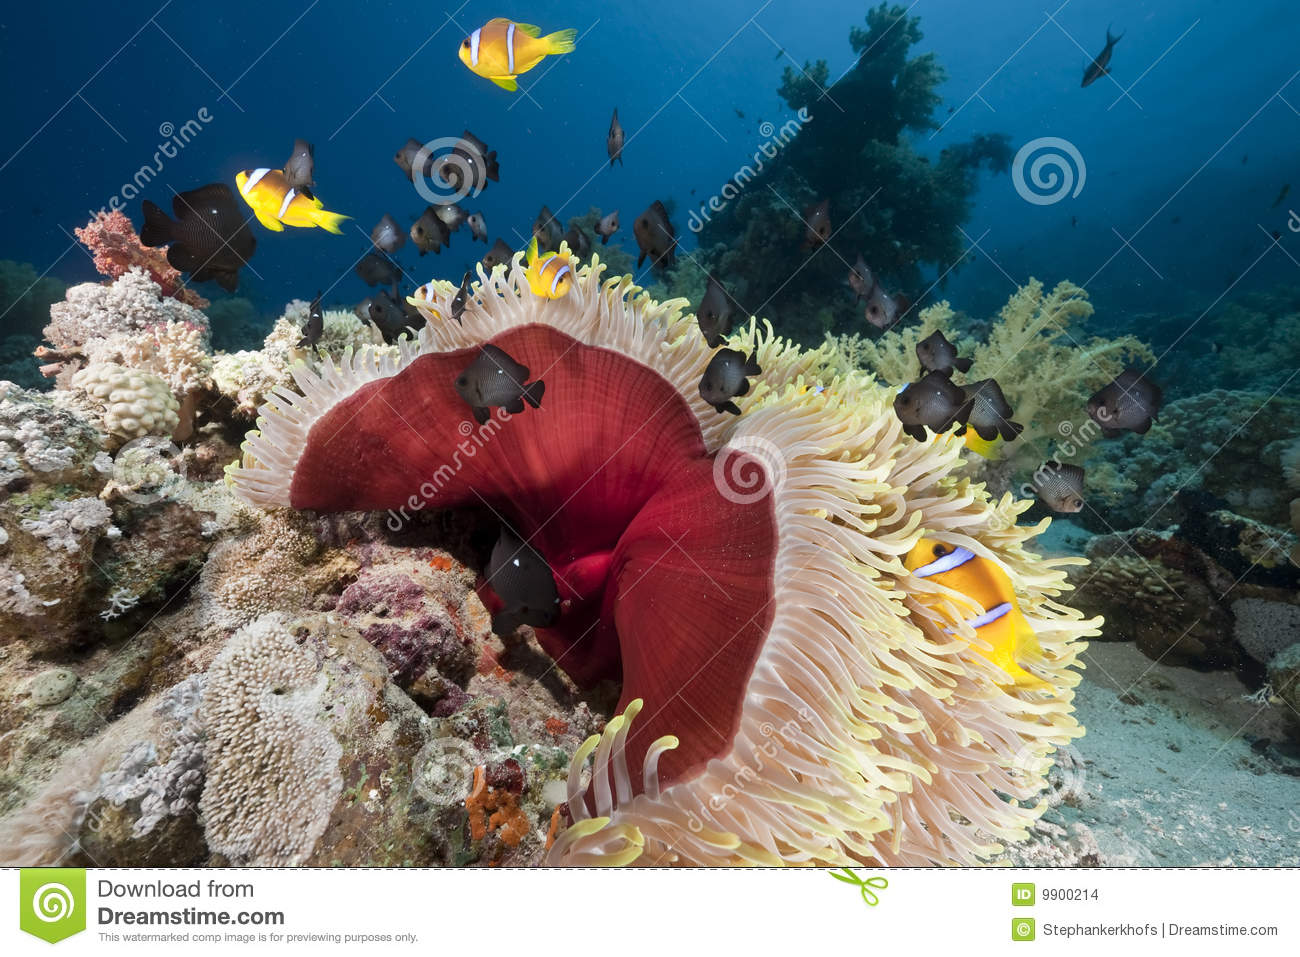 Ocean, coral and anemone